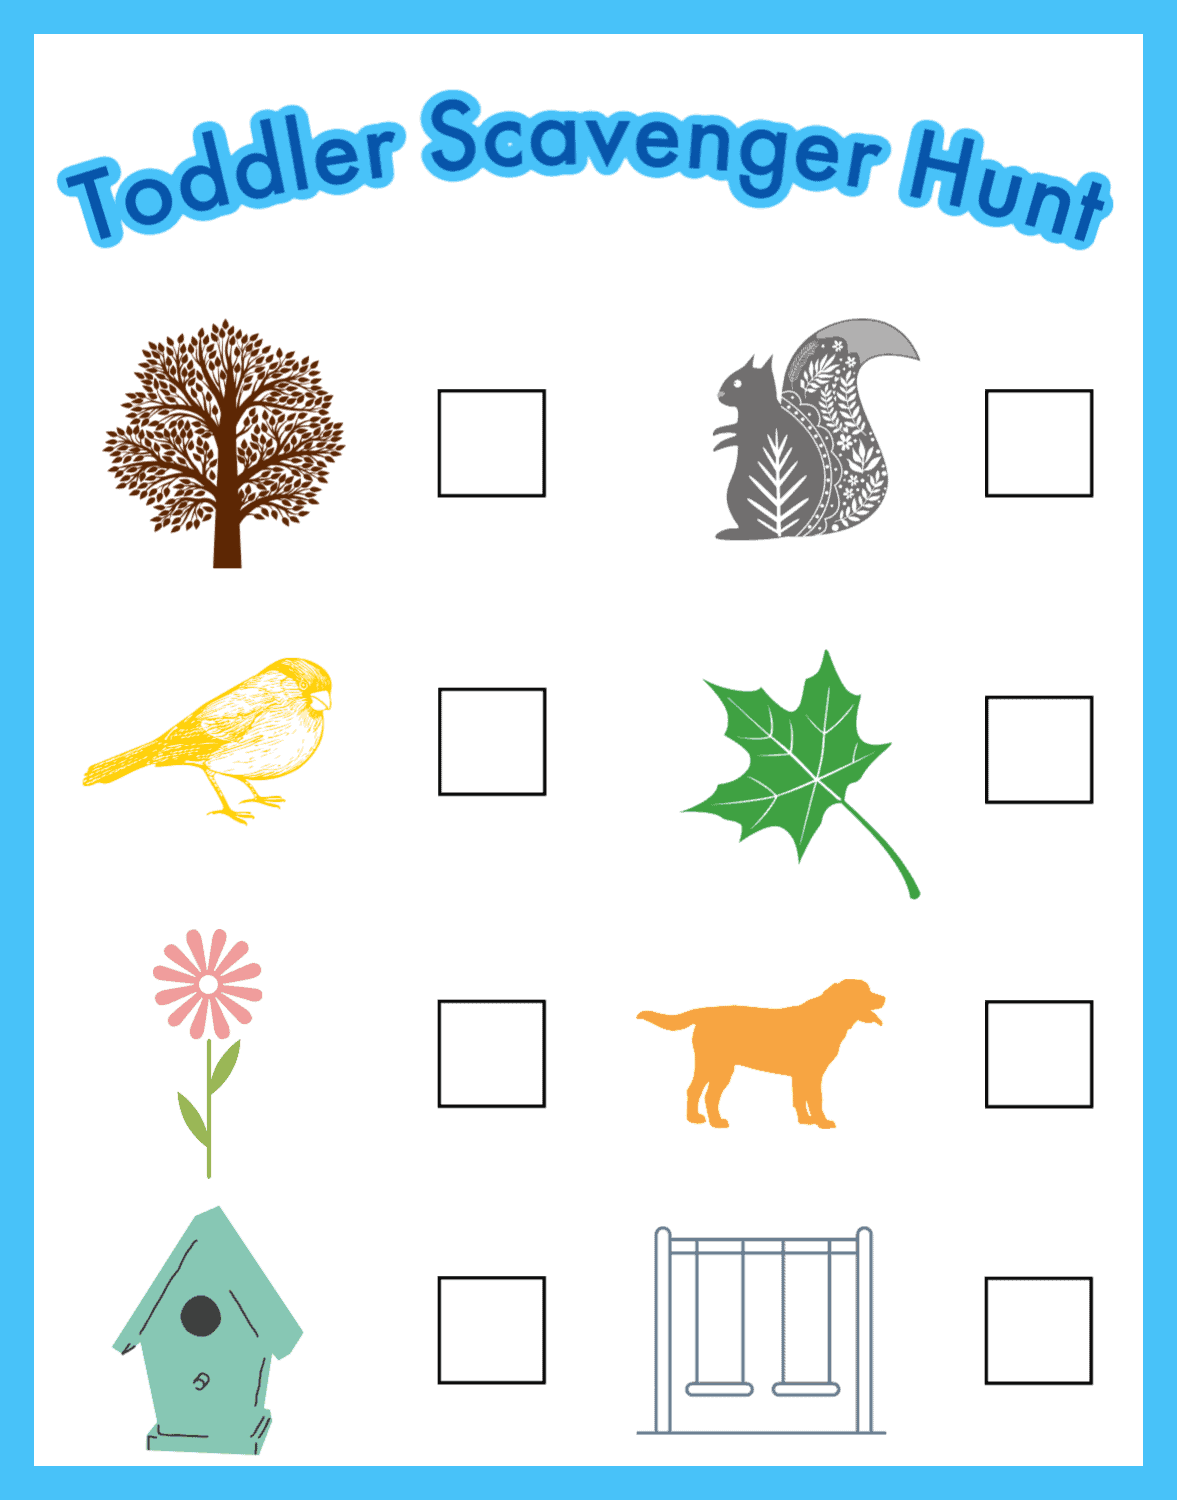 toddler scavenger hunt